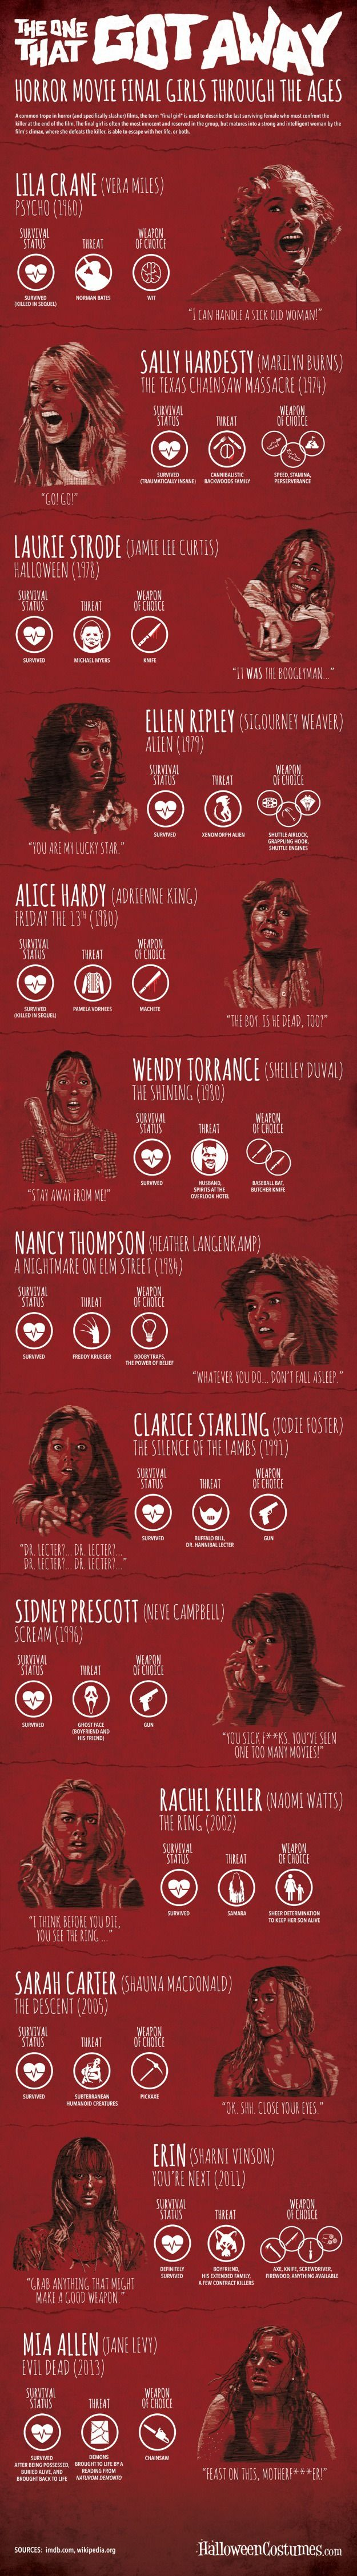 horror-slasher-movie-infographic-the-one-that-got-away